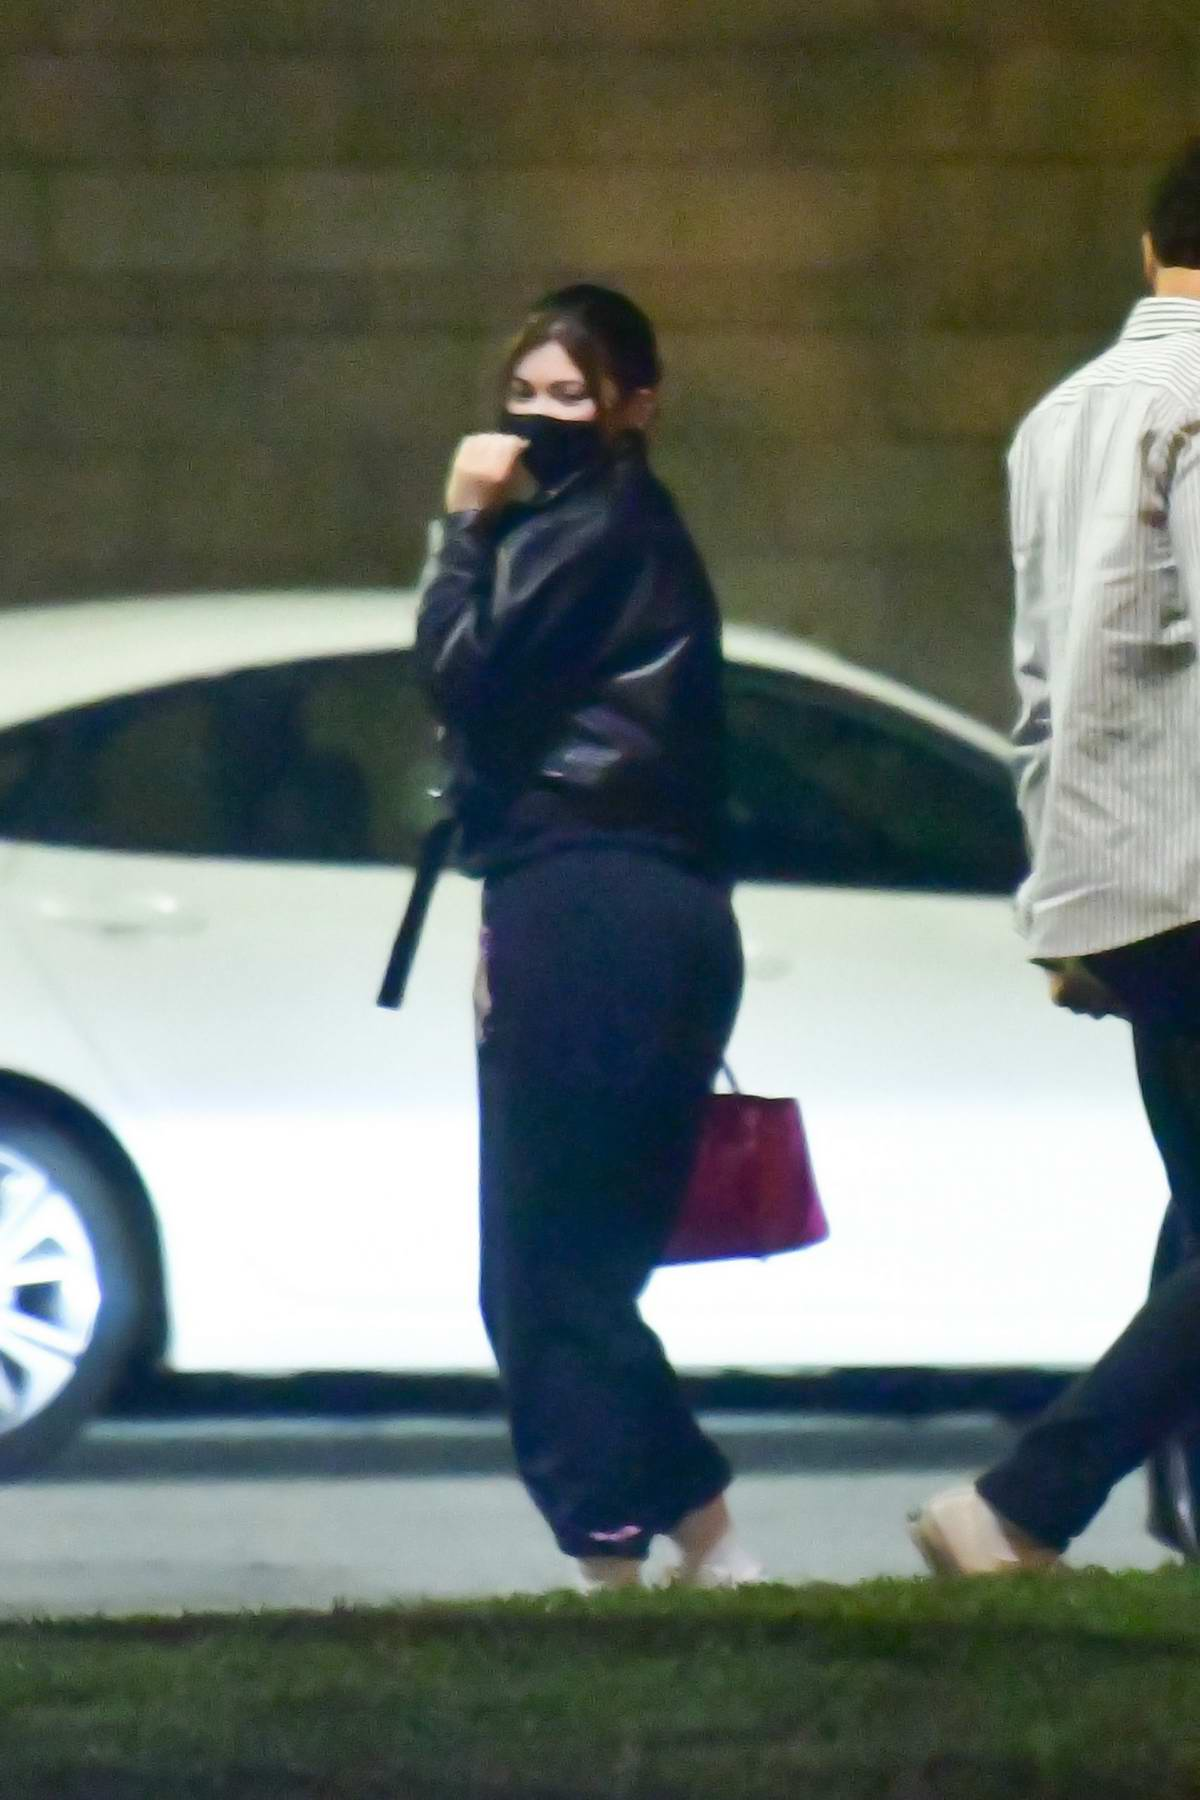 Kylie Jenner seen arriving from Paris in private terminal at LAX in Los Angeles